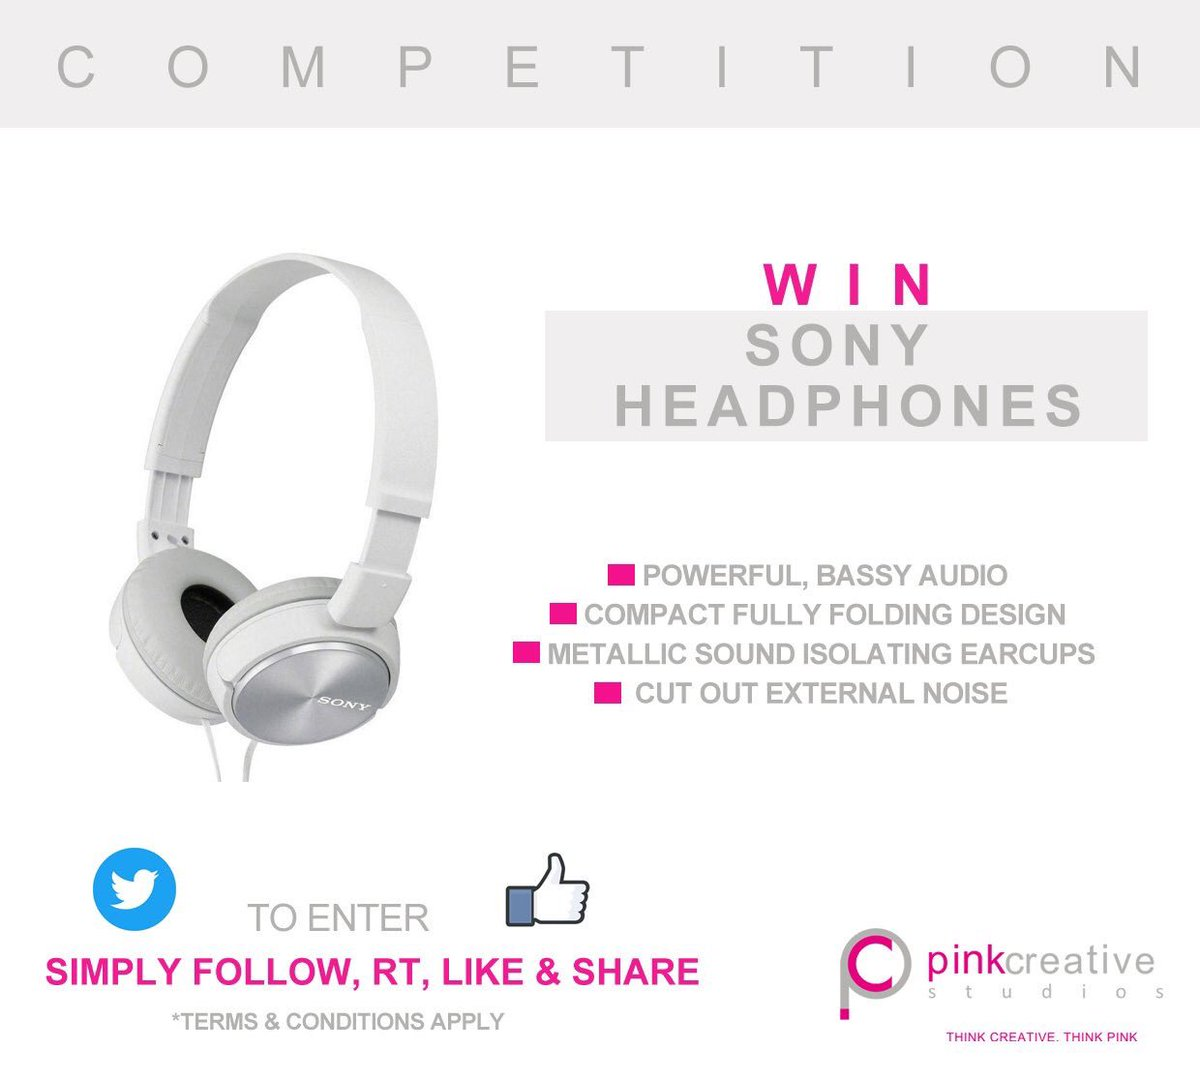 #Win #Sony Headphones. To enter Follow #RT, Like &amp; Share on #Facebook  http:// bit.ly/2sj0ZRe  &nbsp;    #Competition #giveaway #comp #Retweet #free<br>http://pic.twitter.com/4OD6I81Ly8